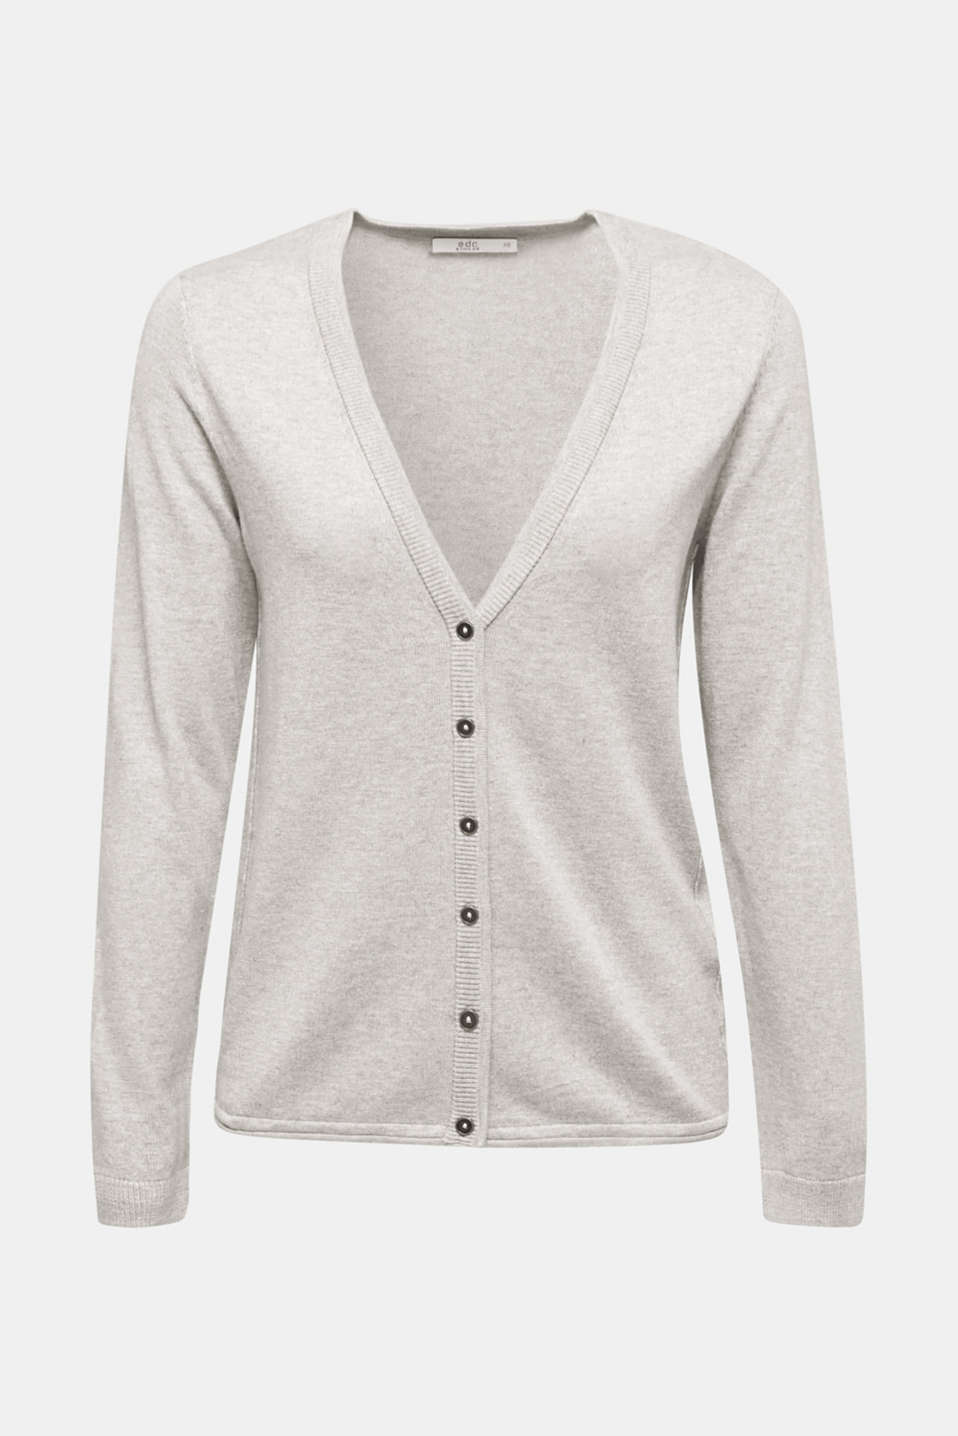 Fine-knit blended cotton cardigan, LIGHT GREY 5, detail image number 5